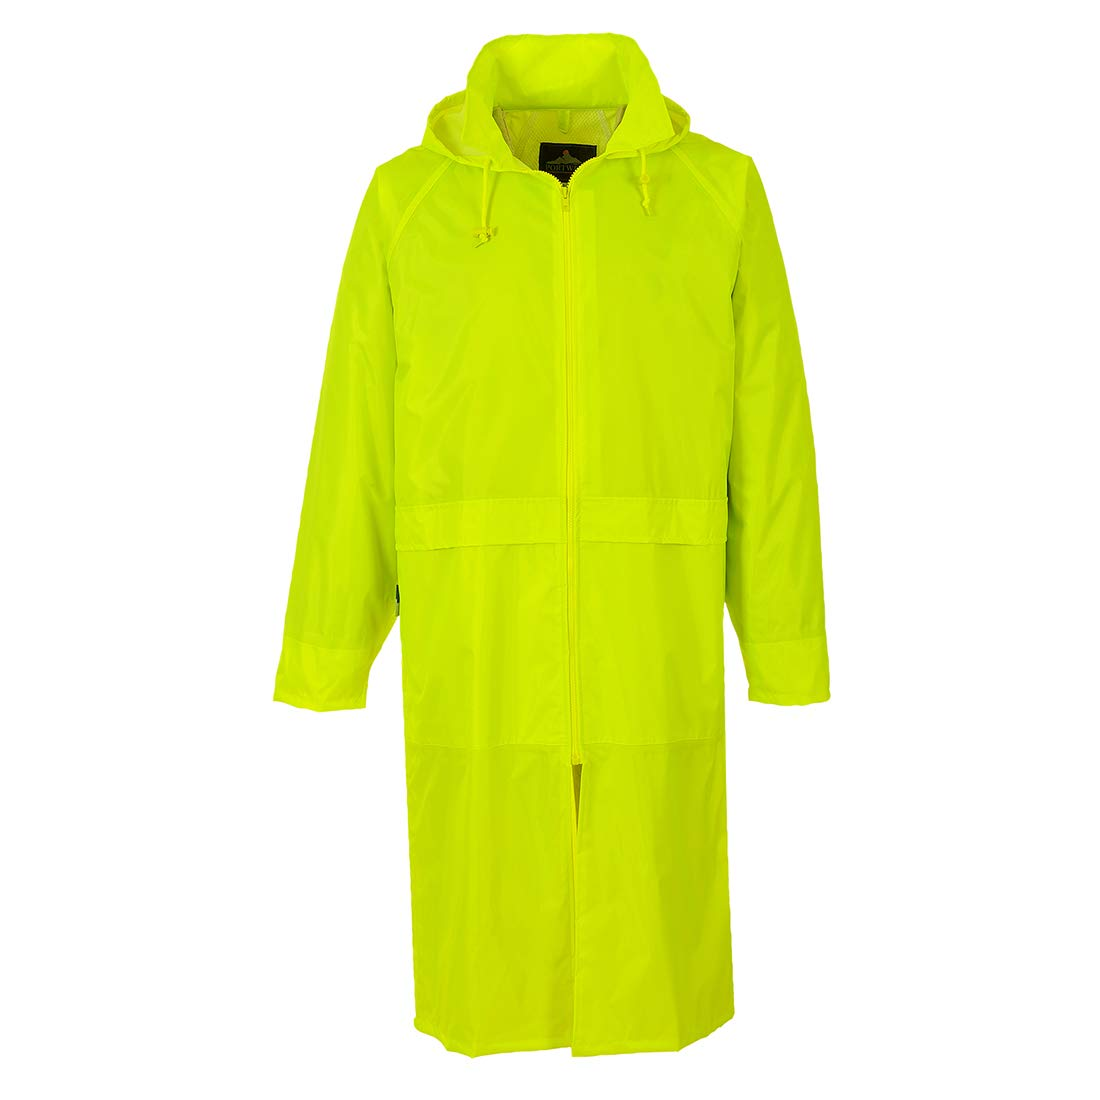 Microlite Rain Jacket Waterproof Navy Blue Rain Coat 3880